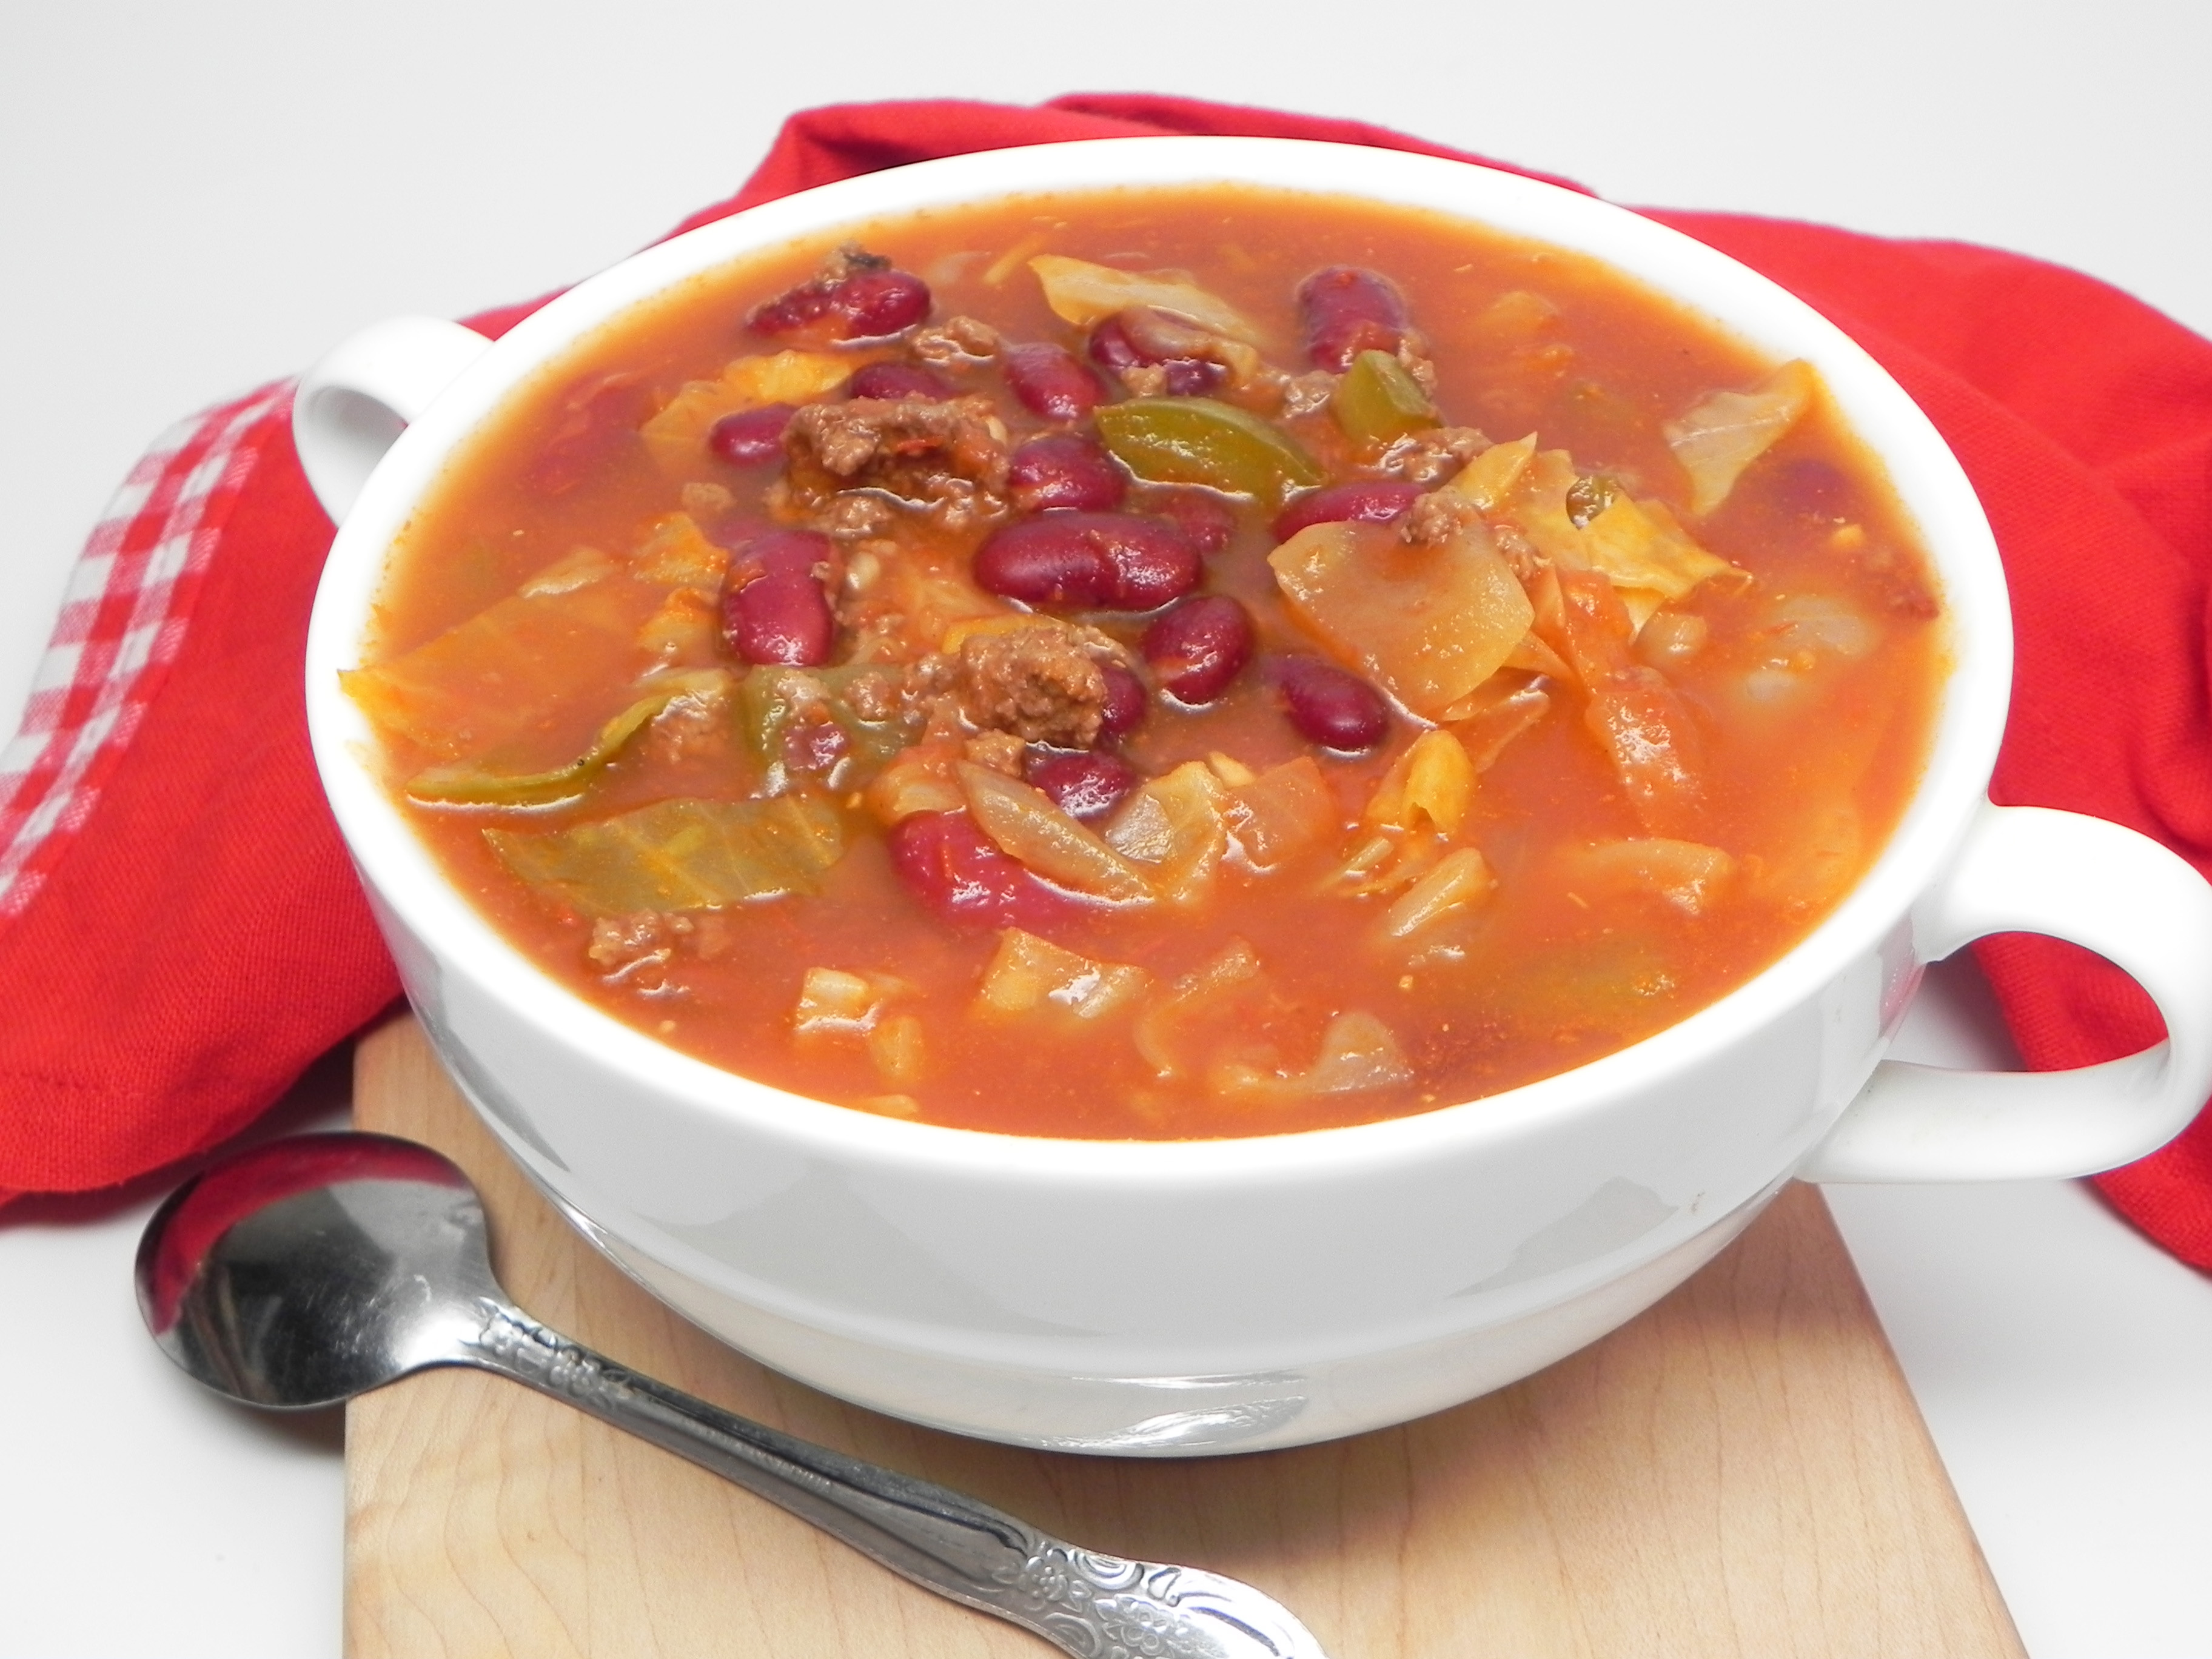 """Break out the big soup pot for this simple soup featuring ground beef, cabbage, kidney beans, and crushed tomatoes. """"I grew up in Kansas City, where my parent's would go to Shoney's once a week,"""" says Soup Loving Nicole. """"They had an all-you-can-eat soup and salad bar and it was the highlight of my week. Even as a kid, I've always loved soup. Then we moved out of state. Even though it has been nearly 40 years since I last had it, I never forgot about their beef and cabbage soup. I decided to recreate it based off my memory and here is what I came up with. Enjoy!"""""""